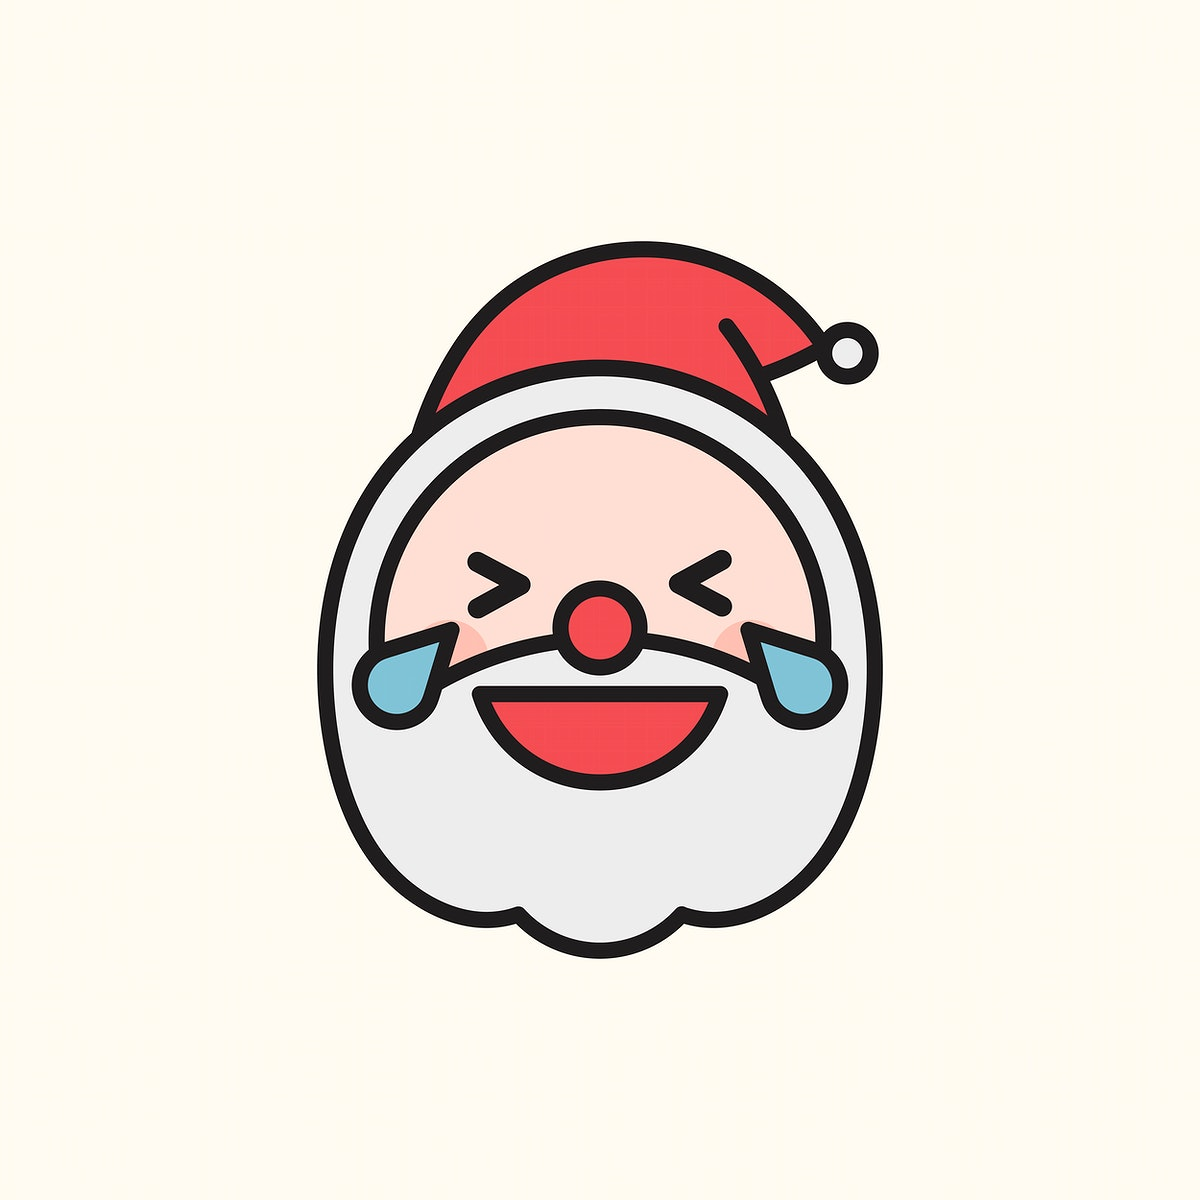 Santa laughing with tears of joy  emoticon isolated on beige background vector